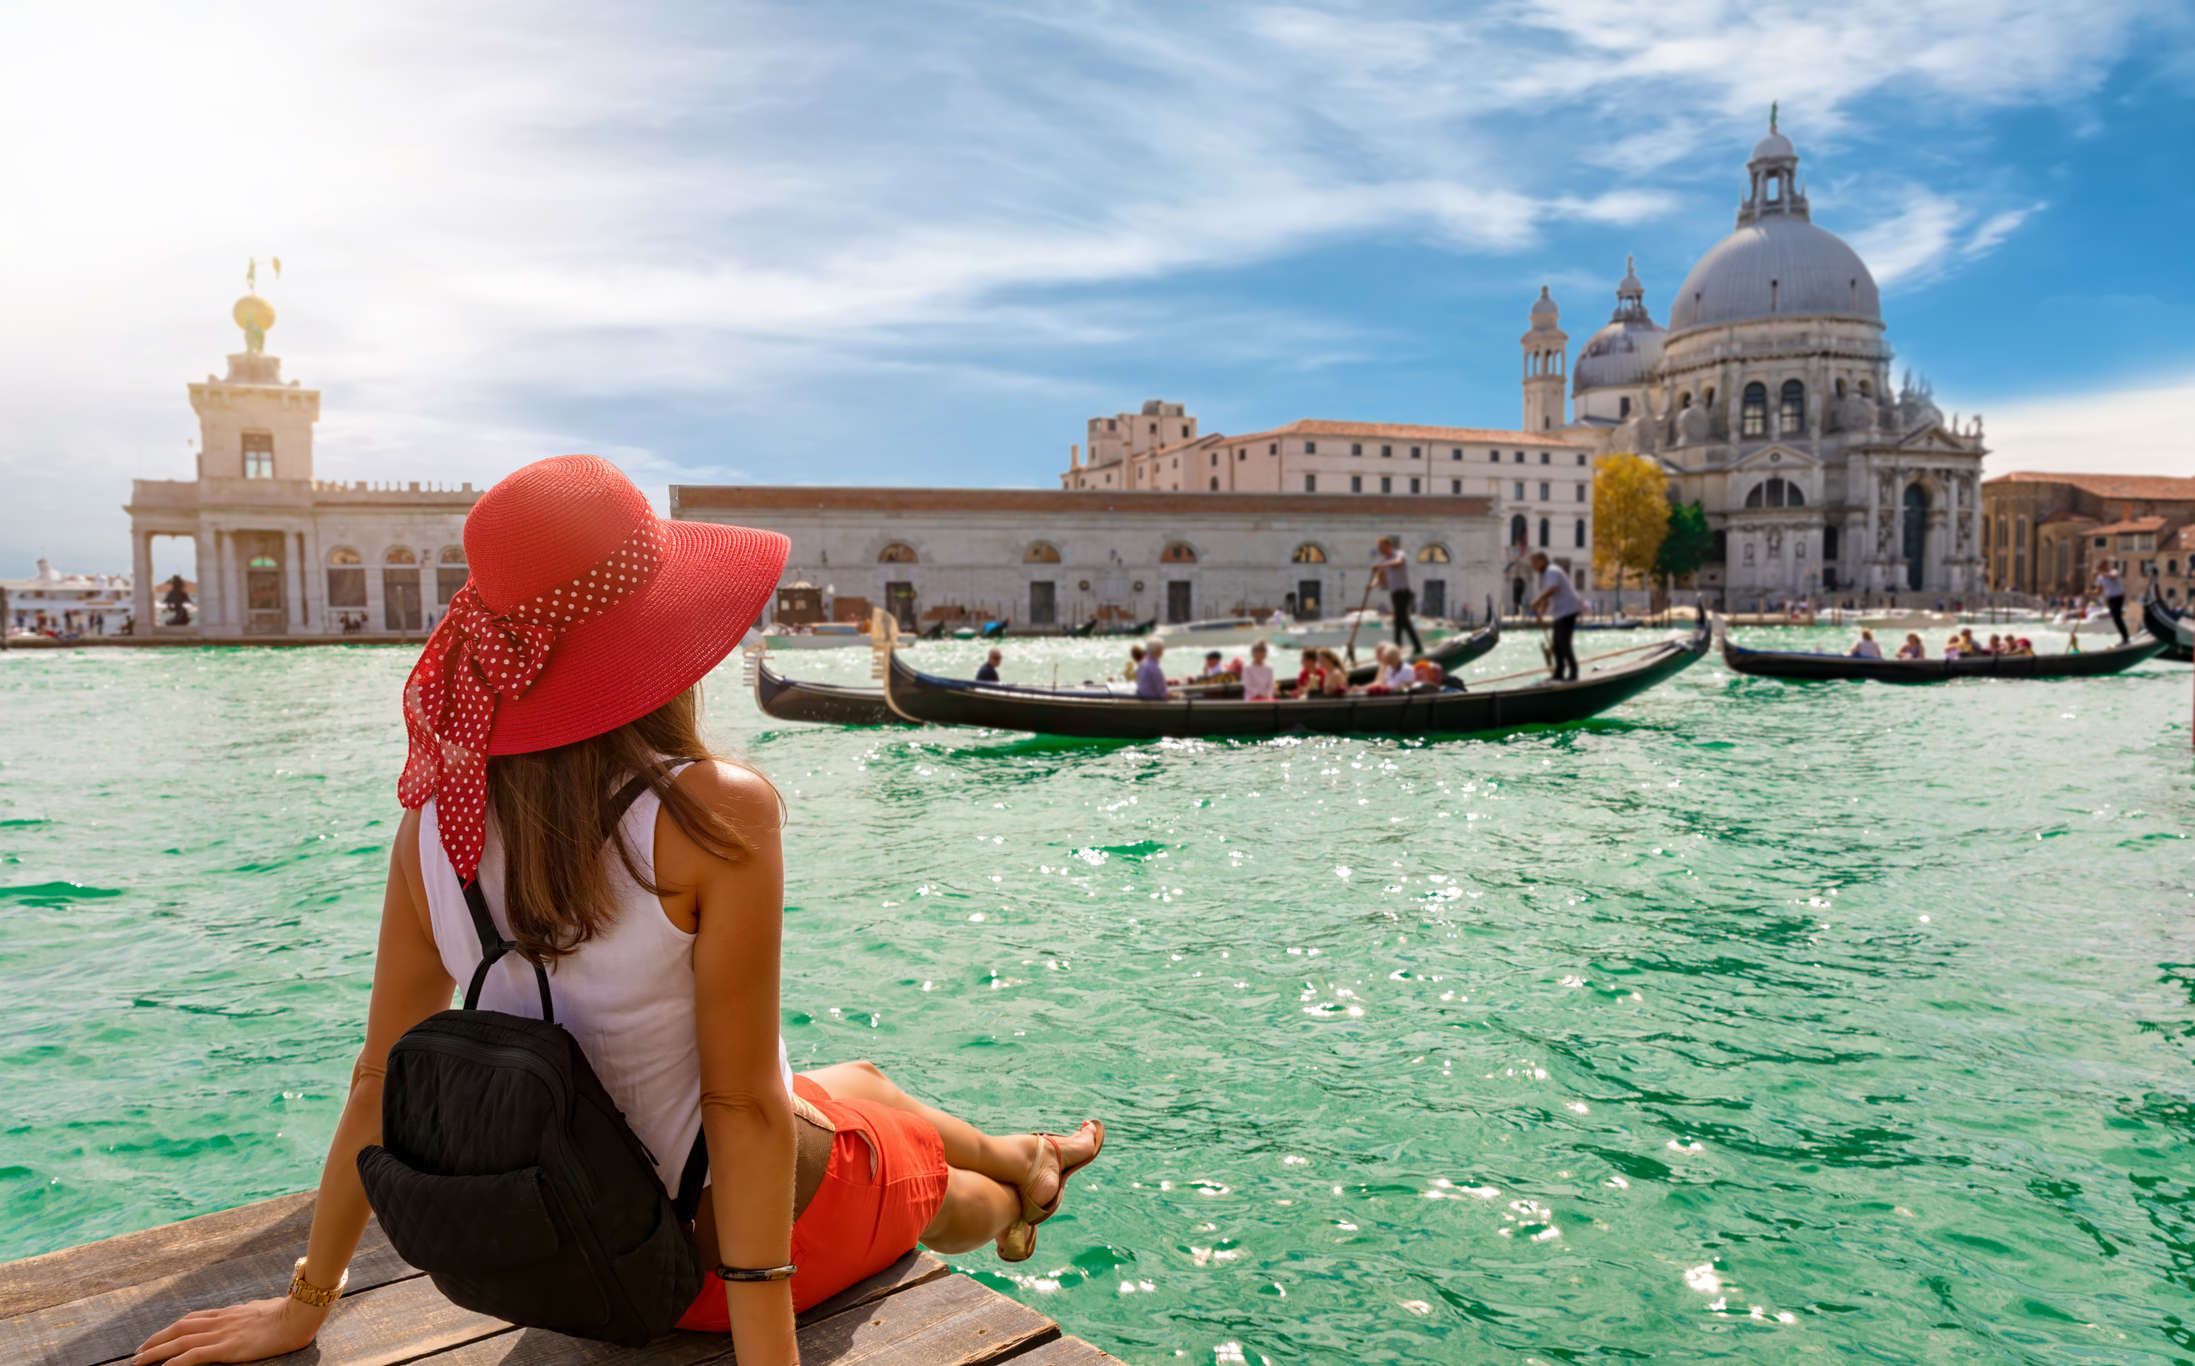 Venice manages to dodge UNESCO's endangered list after ban on large ships